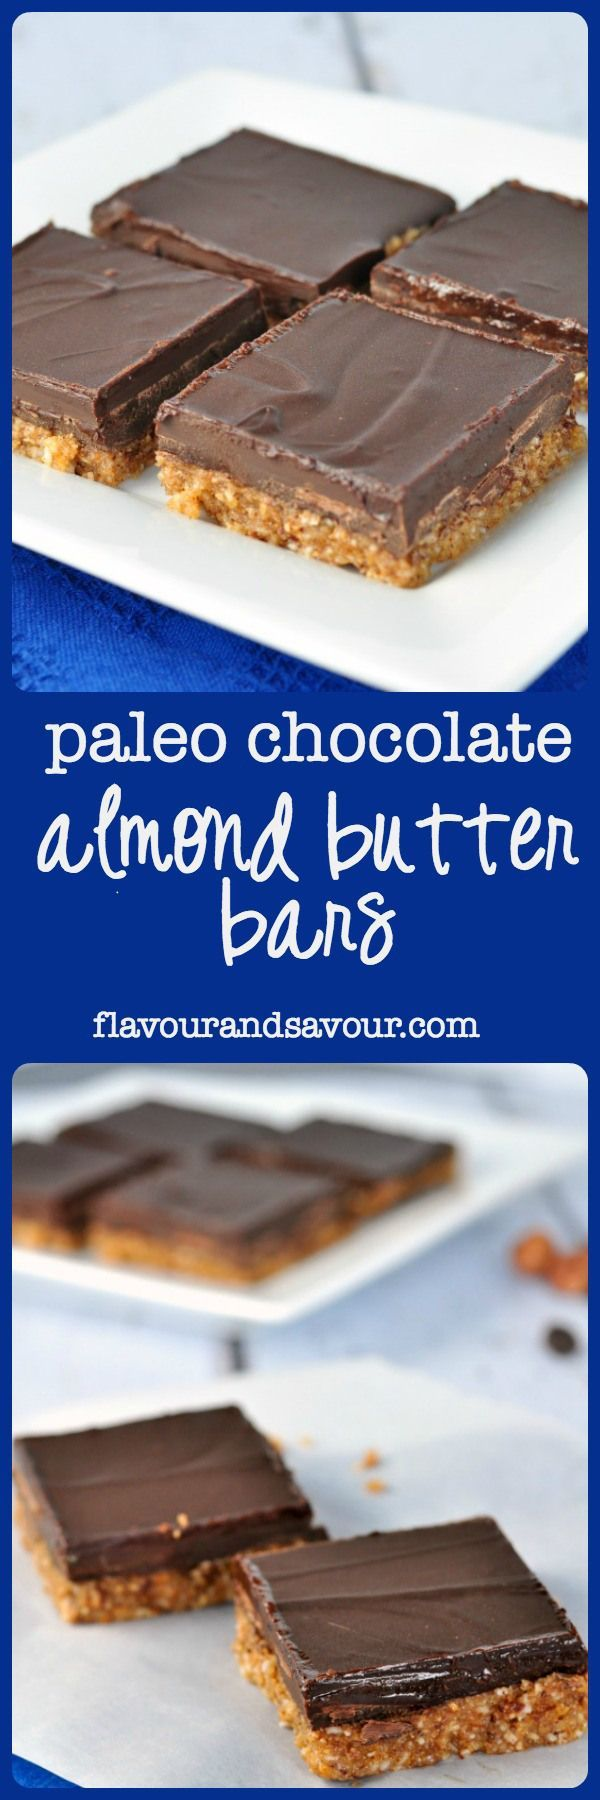 Paleo Chocolate Hazelnut Almond Butter Bars. Do you remember those sweet chocolate peanut butter bars Mom used to make? Try these Chocolate  Almond Butter Bars for a healthier version of an old favourite. No baking required!